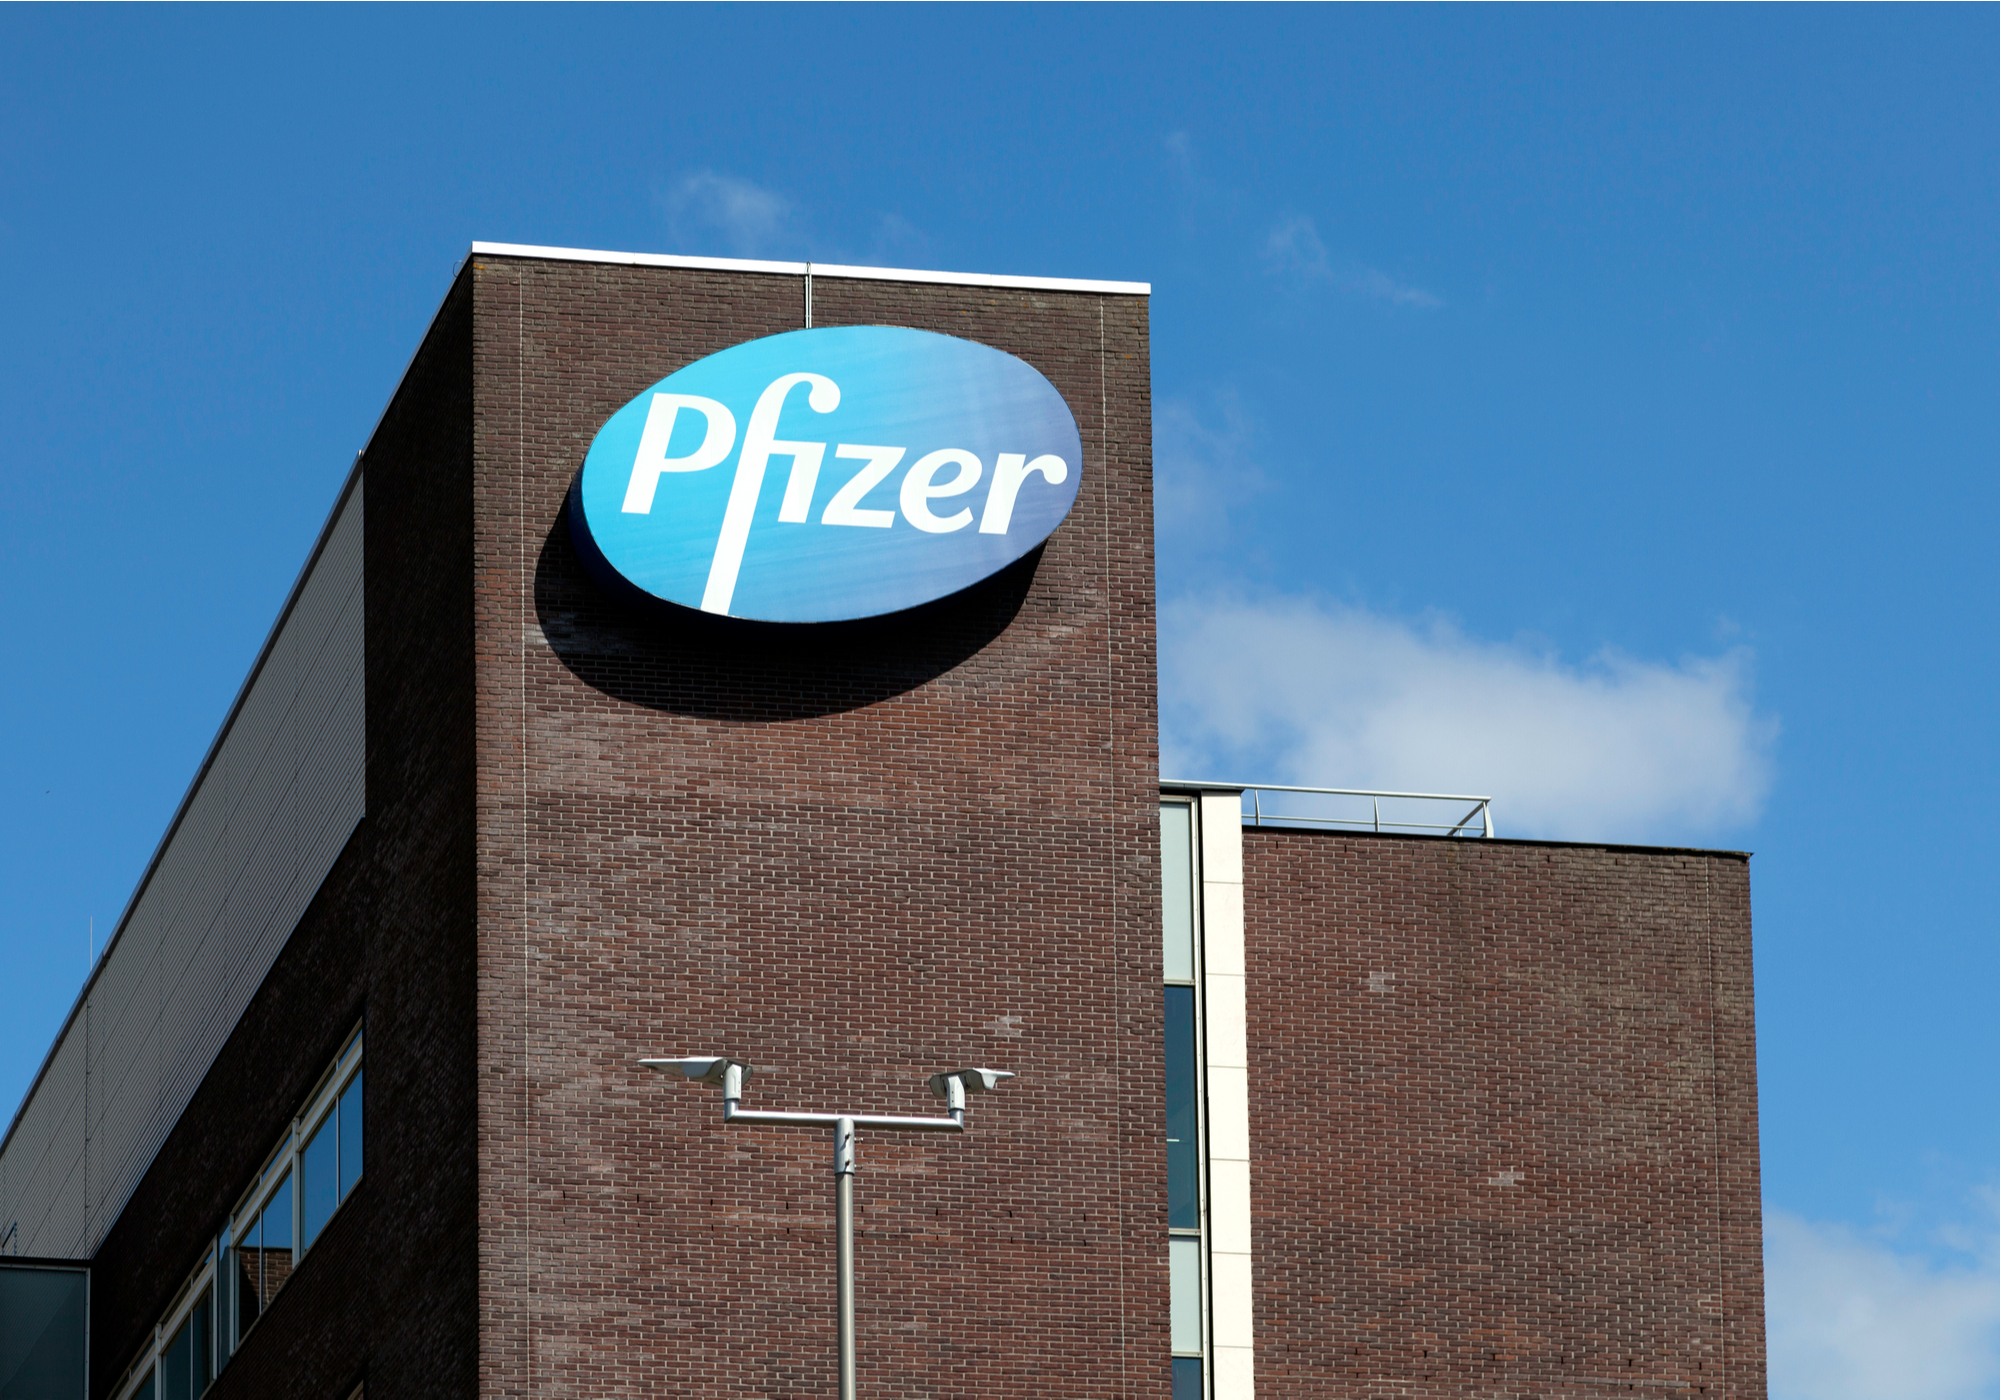 Pfizer data breach exposes prescription phone call transcripts